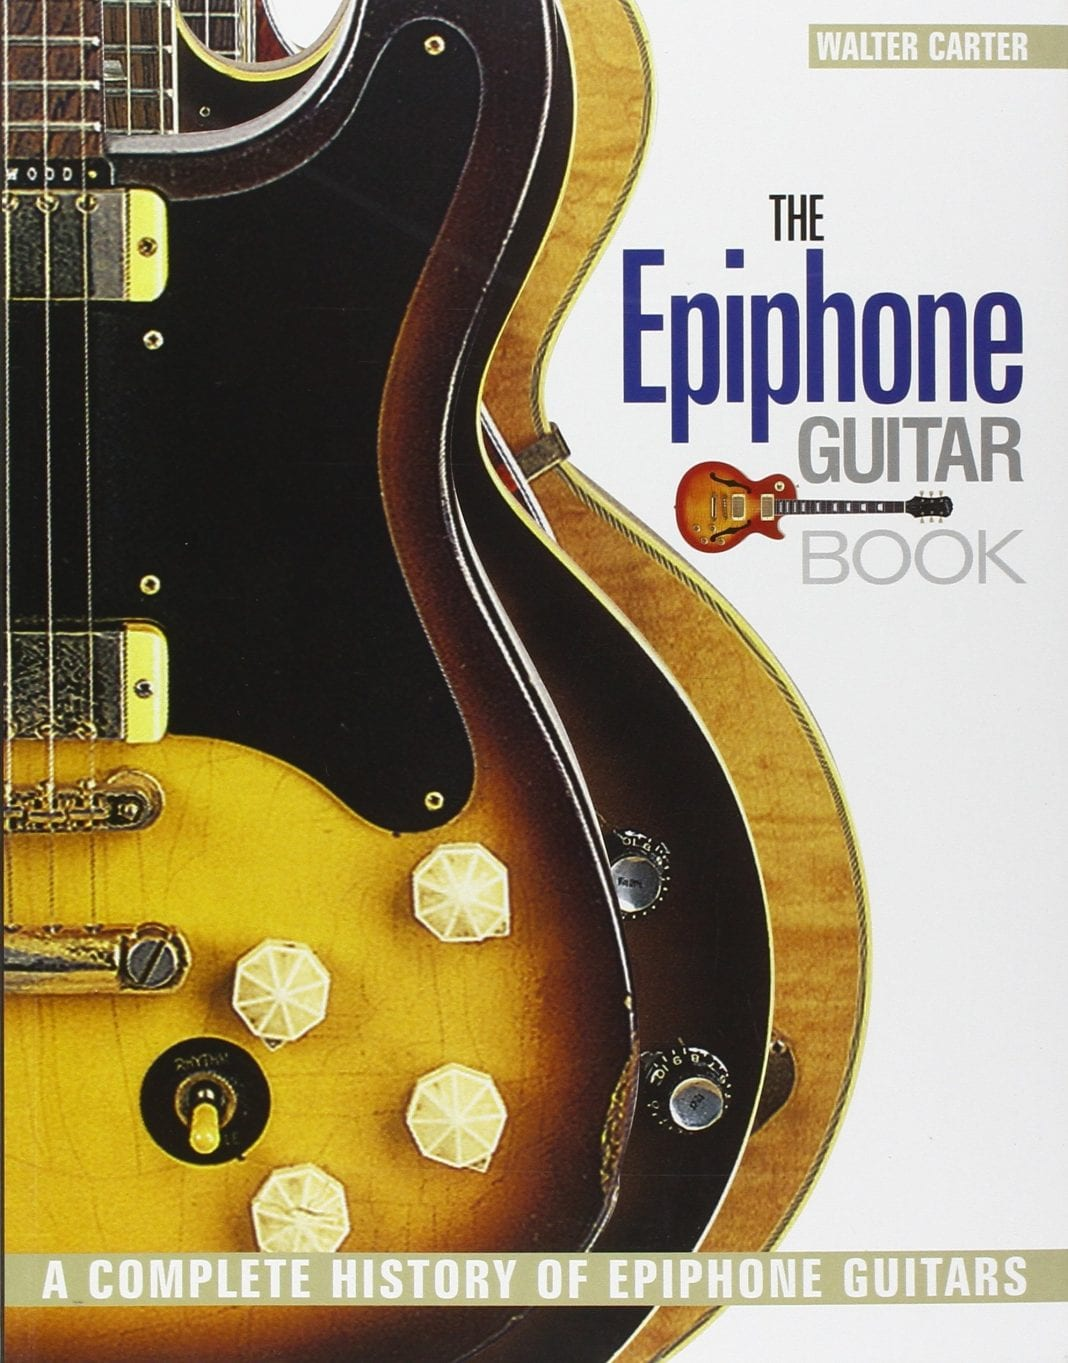 the epiphone guitar book